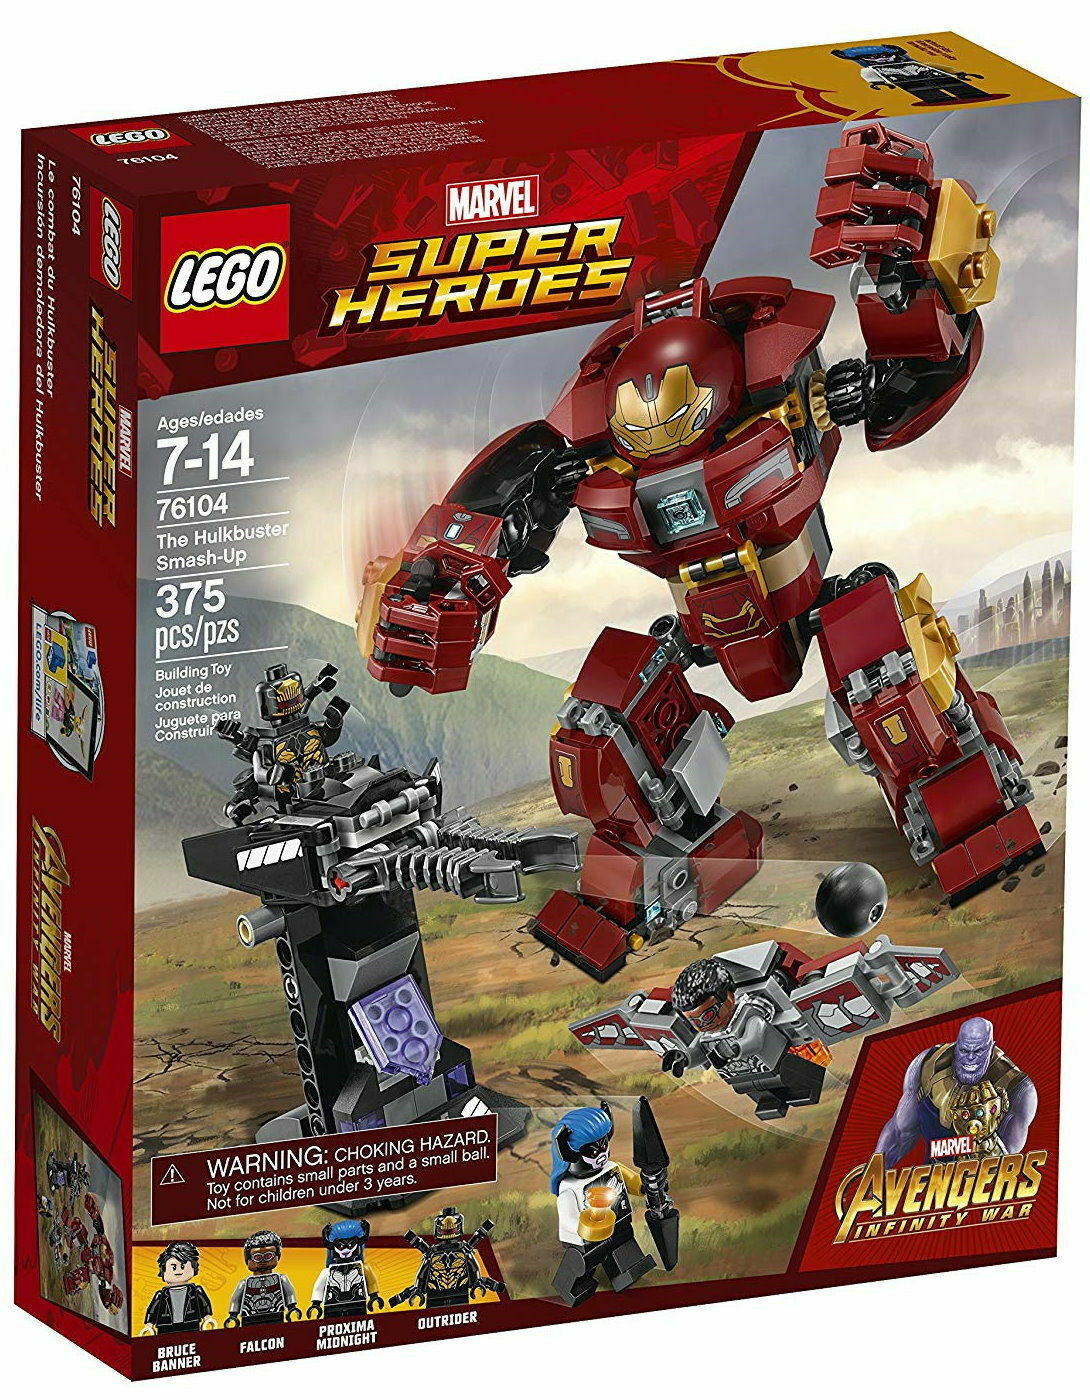 LEGO Marvel Super Heroes The Hulkbuster Smash-Up 2018 - New New New & sealed 1dceb0